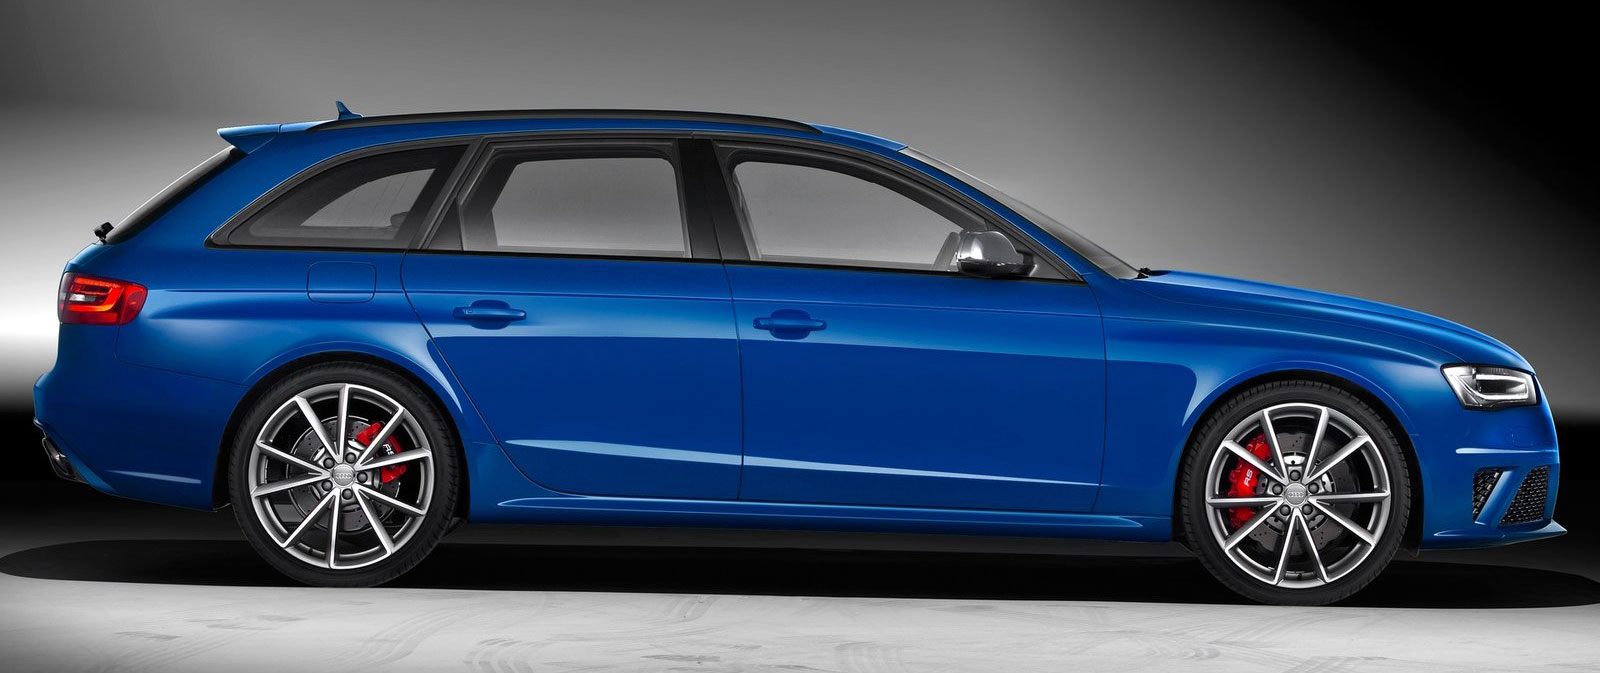 Audi Rs4 Avant Nogaro Selection Tribute To The Rs2 Paul